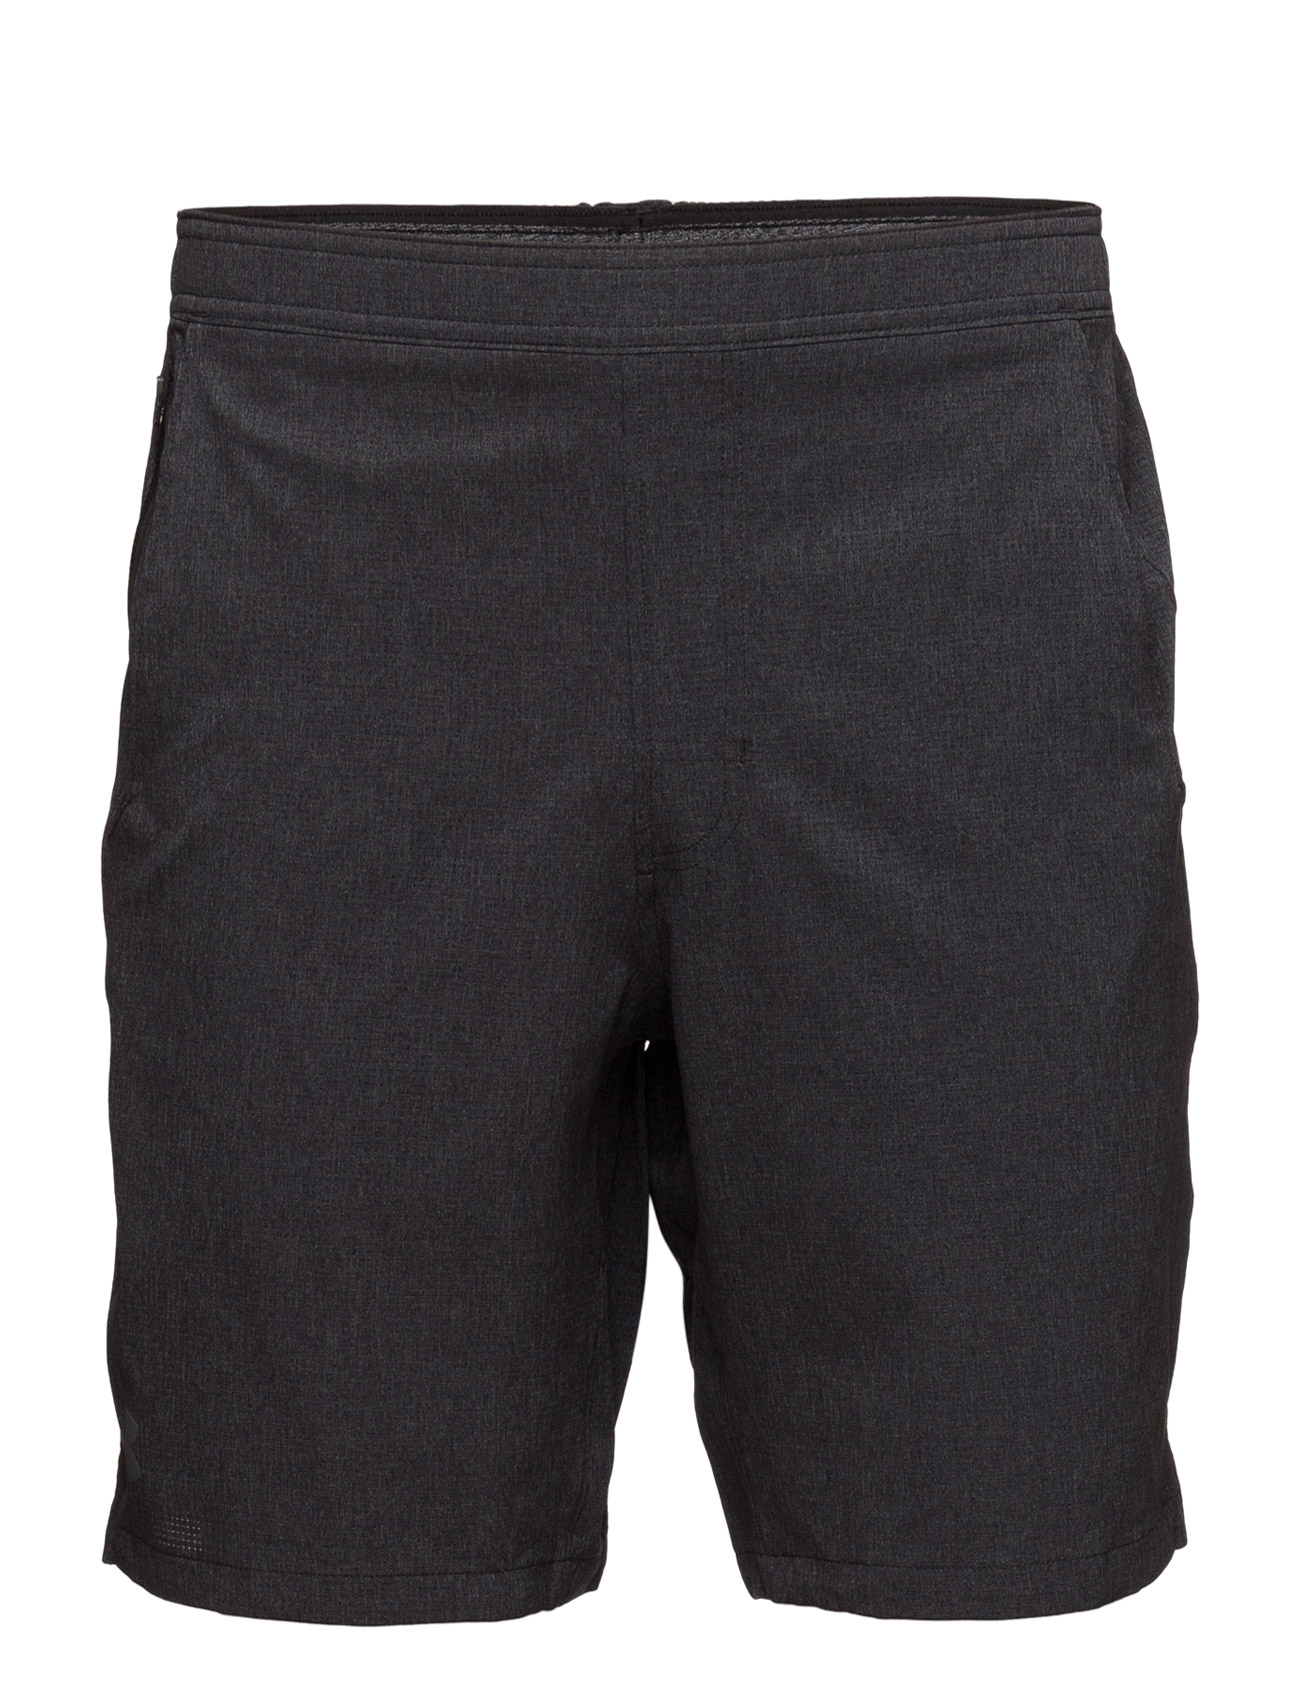 Elevated Training Short Under Armour Træningsshorts til Mænd i Sort